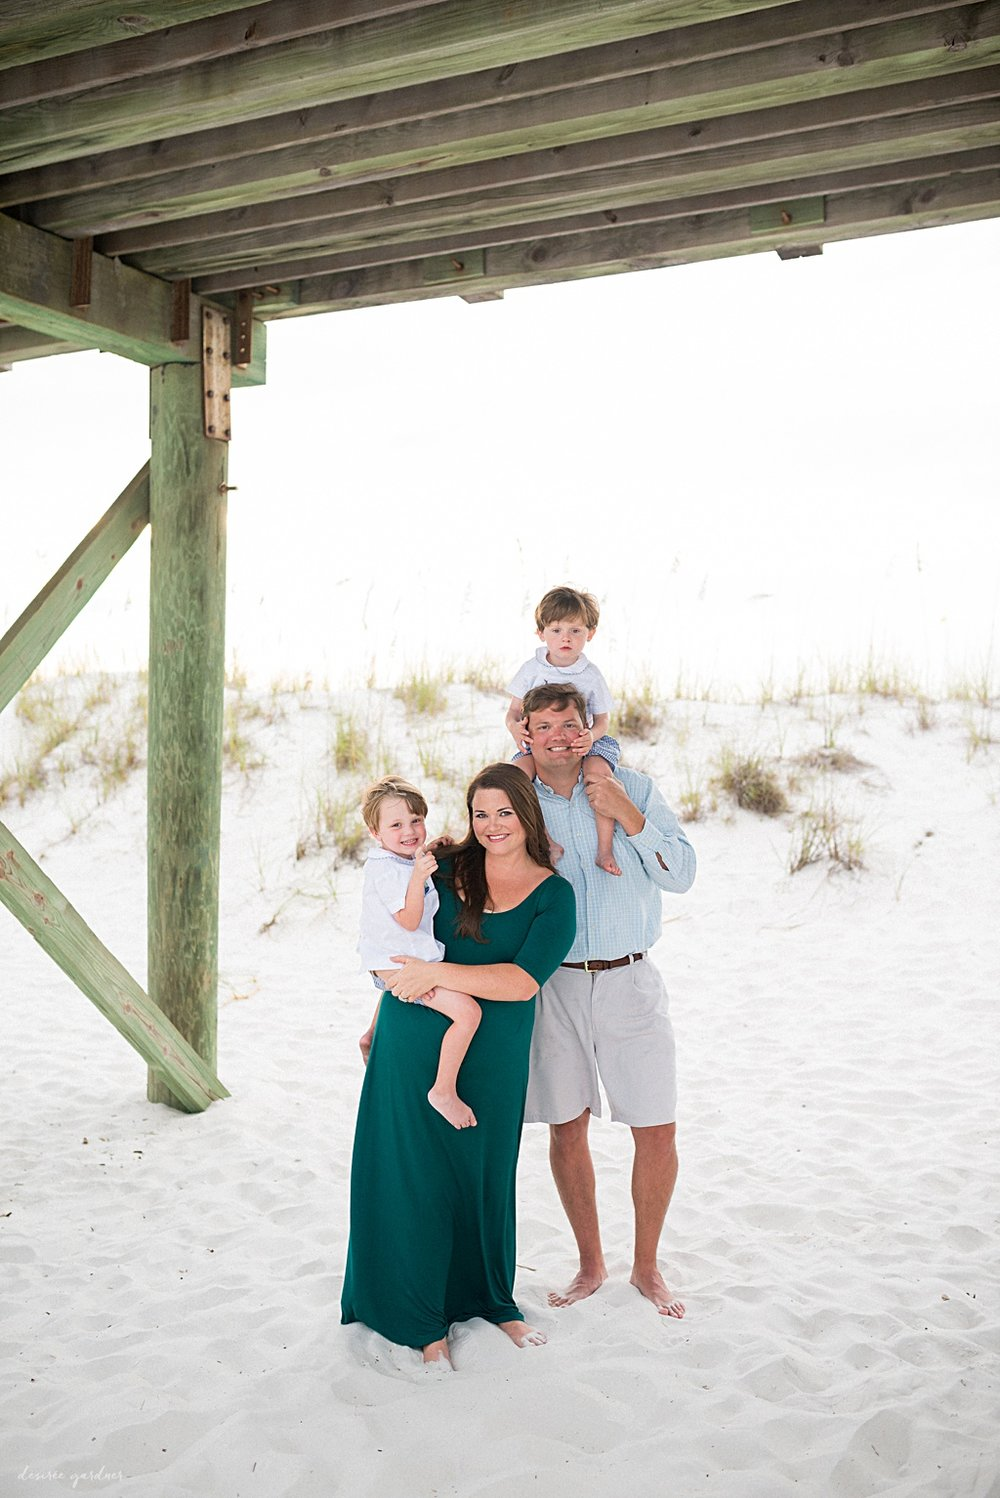 panama-city-beach-30a-wedding-photographer-family-destination_0321.jpg